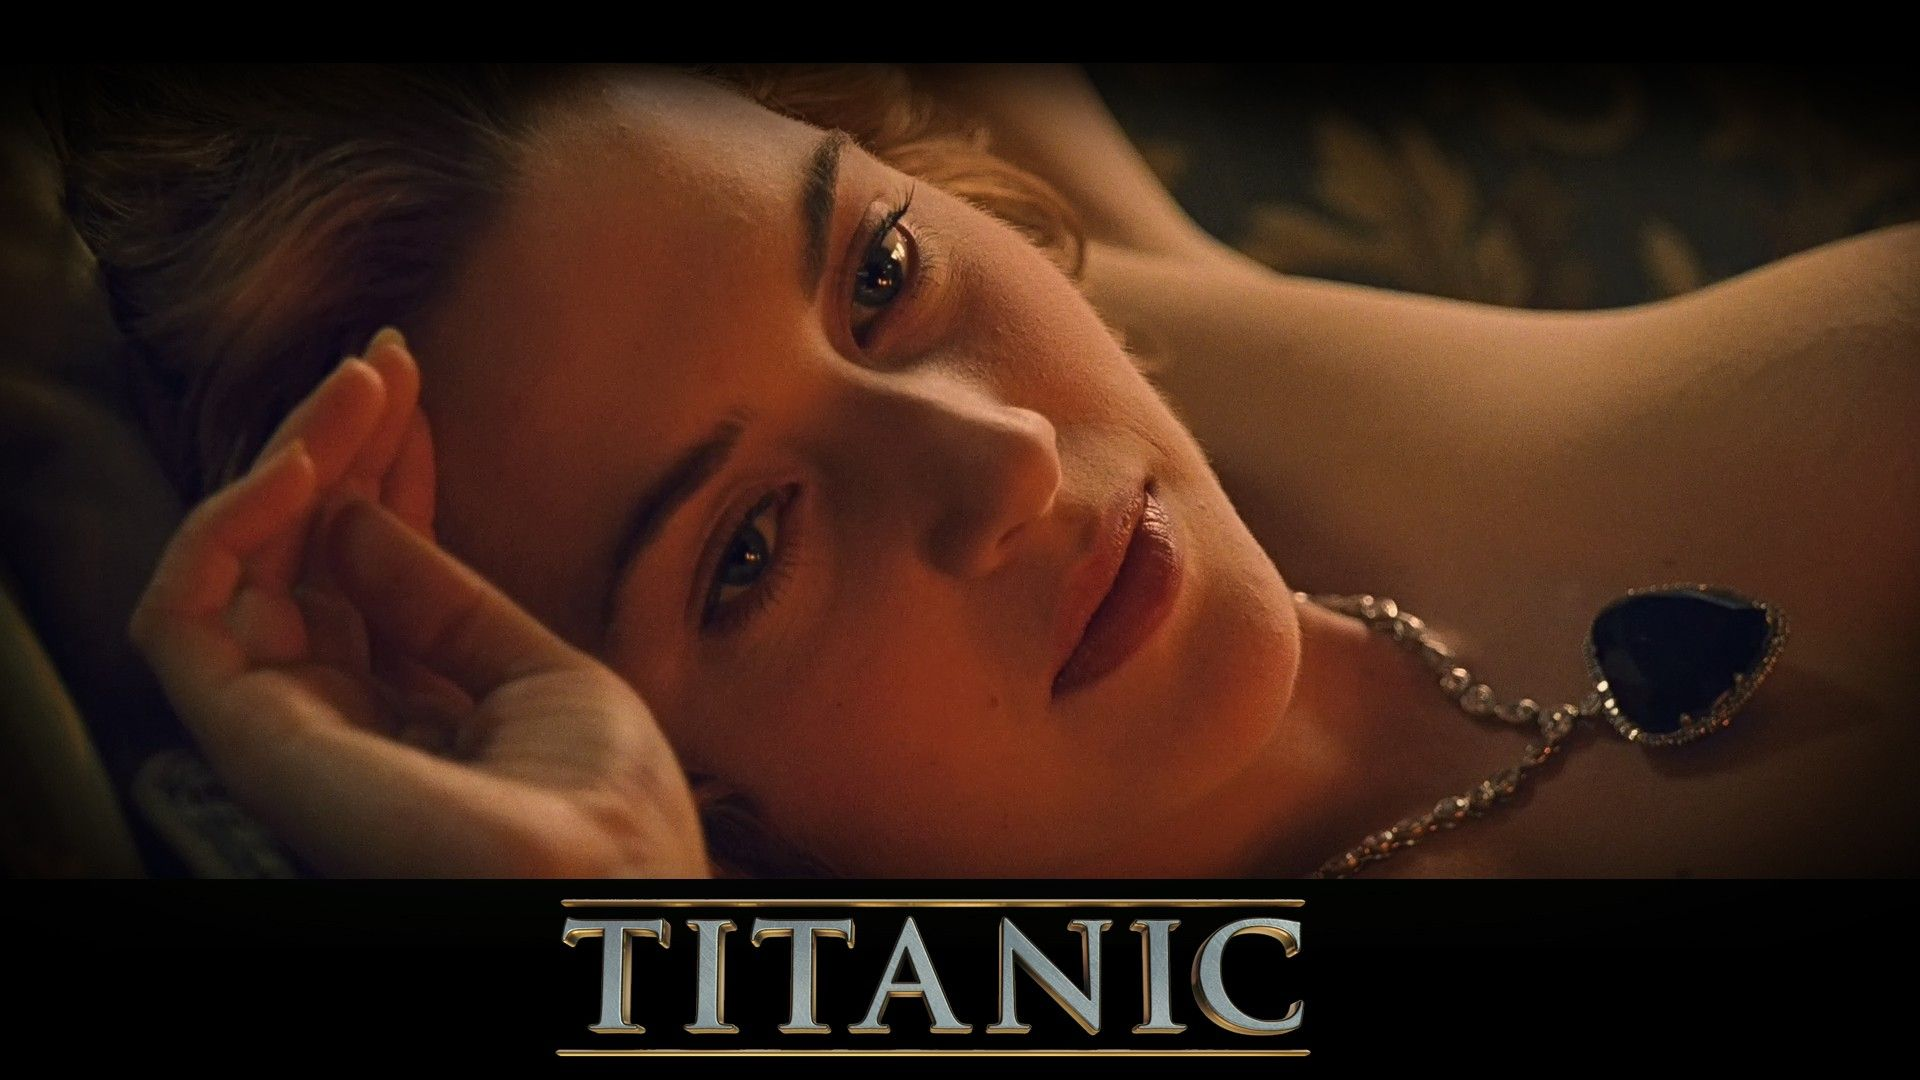 Titanic Movie Kate Winslet Rose Paint Images Photos Gallery Hd Wallpapers Widescreen